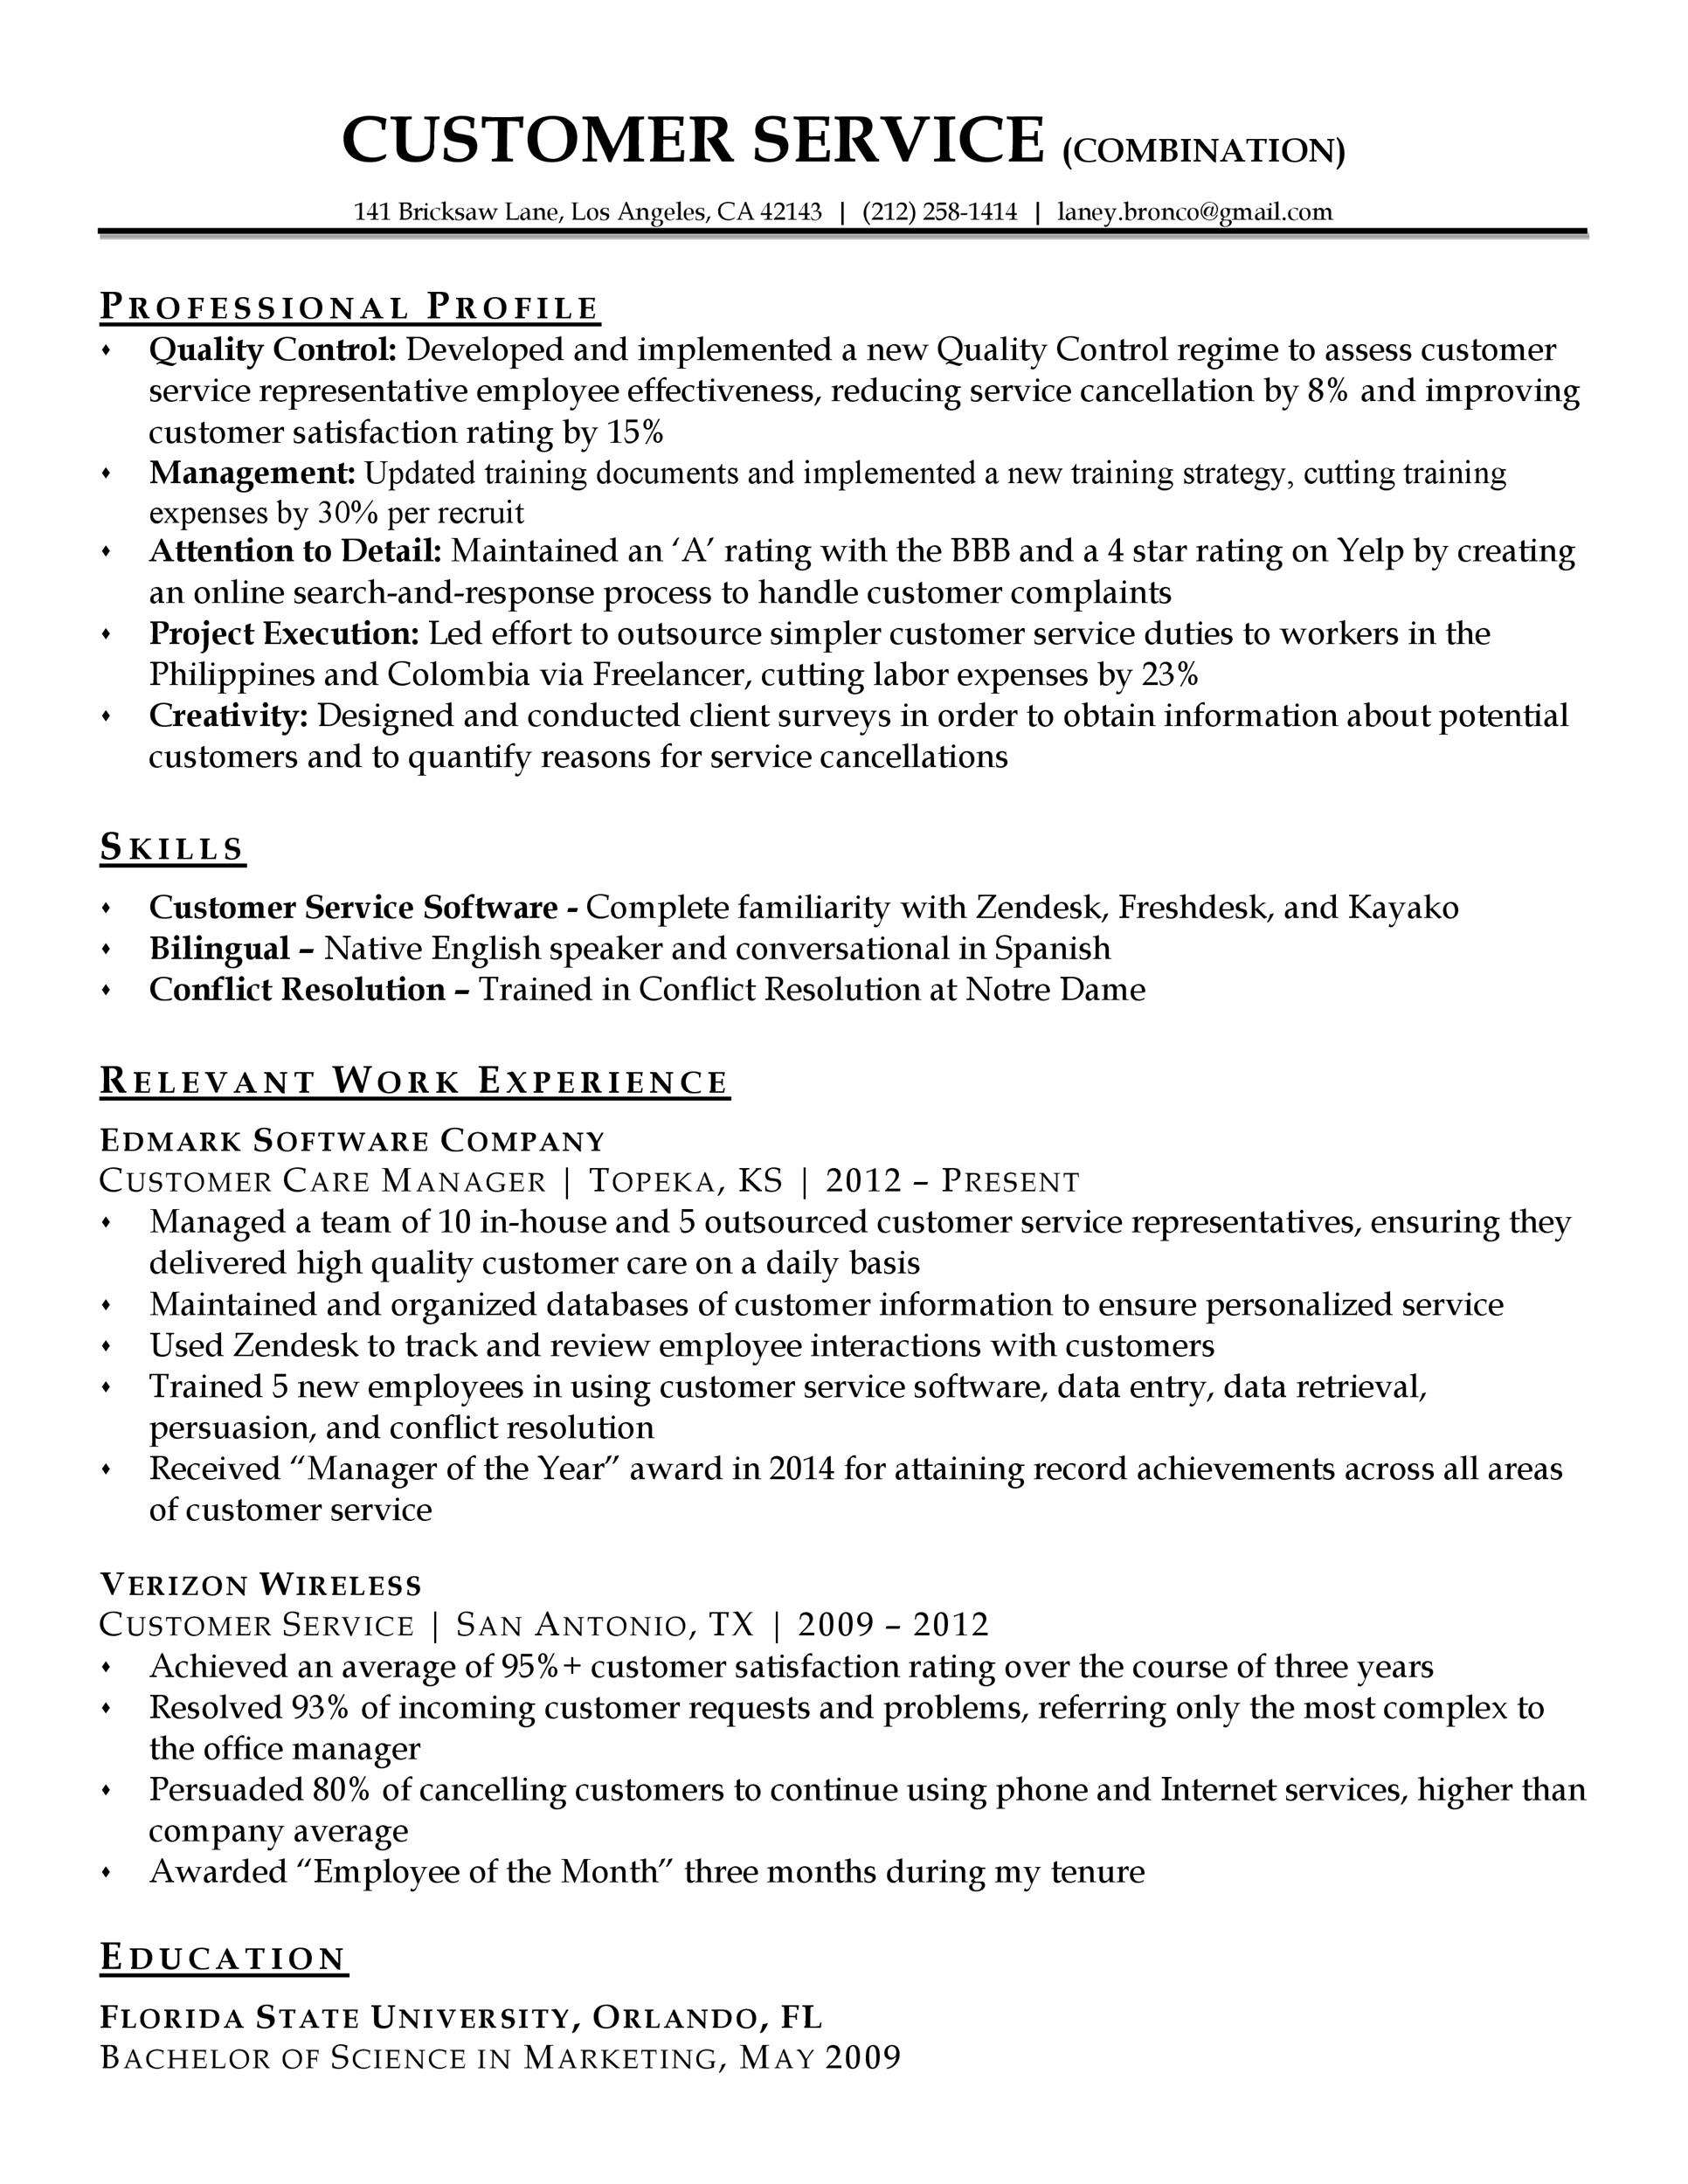 customer service resume examples - Customer Service Resume